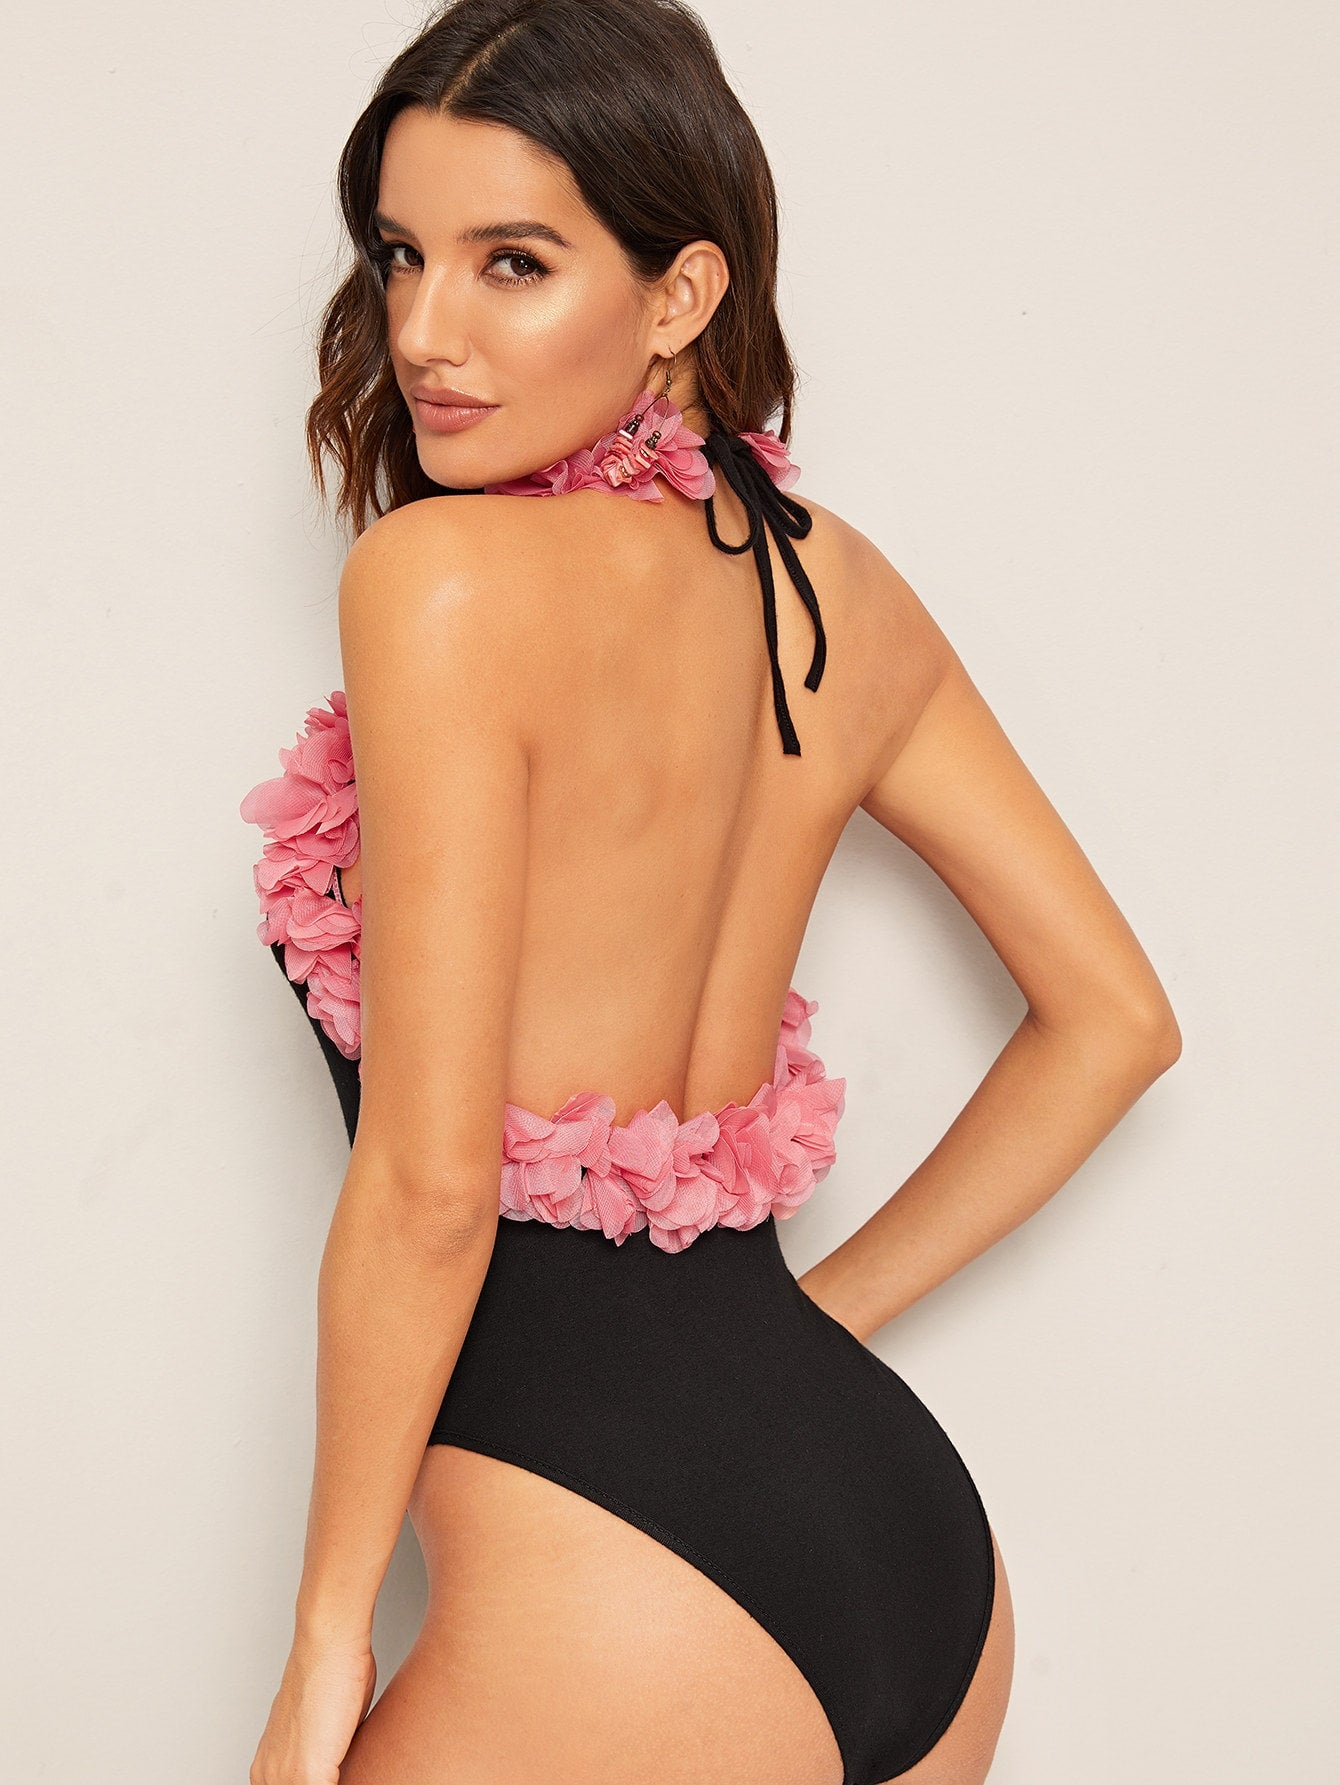 3D Exaggerated Ruffle Backless Halter Bodysuit